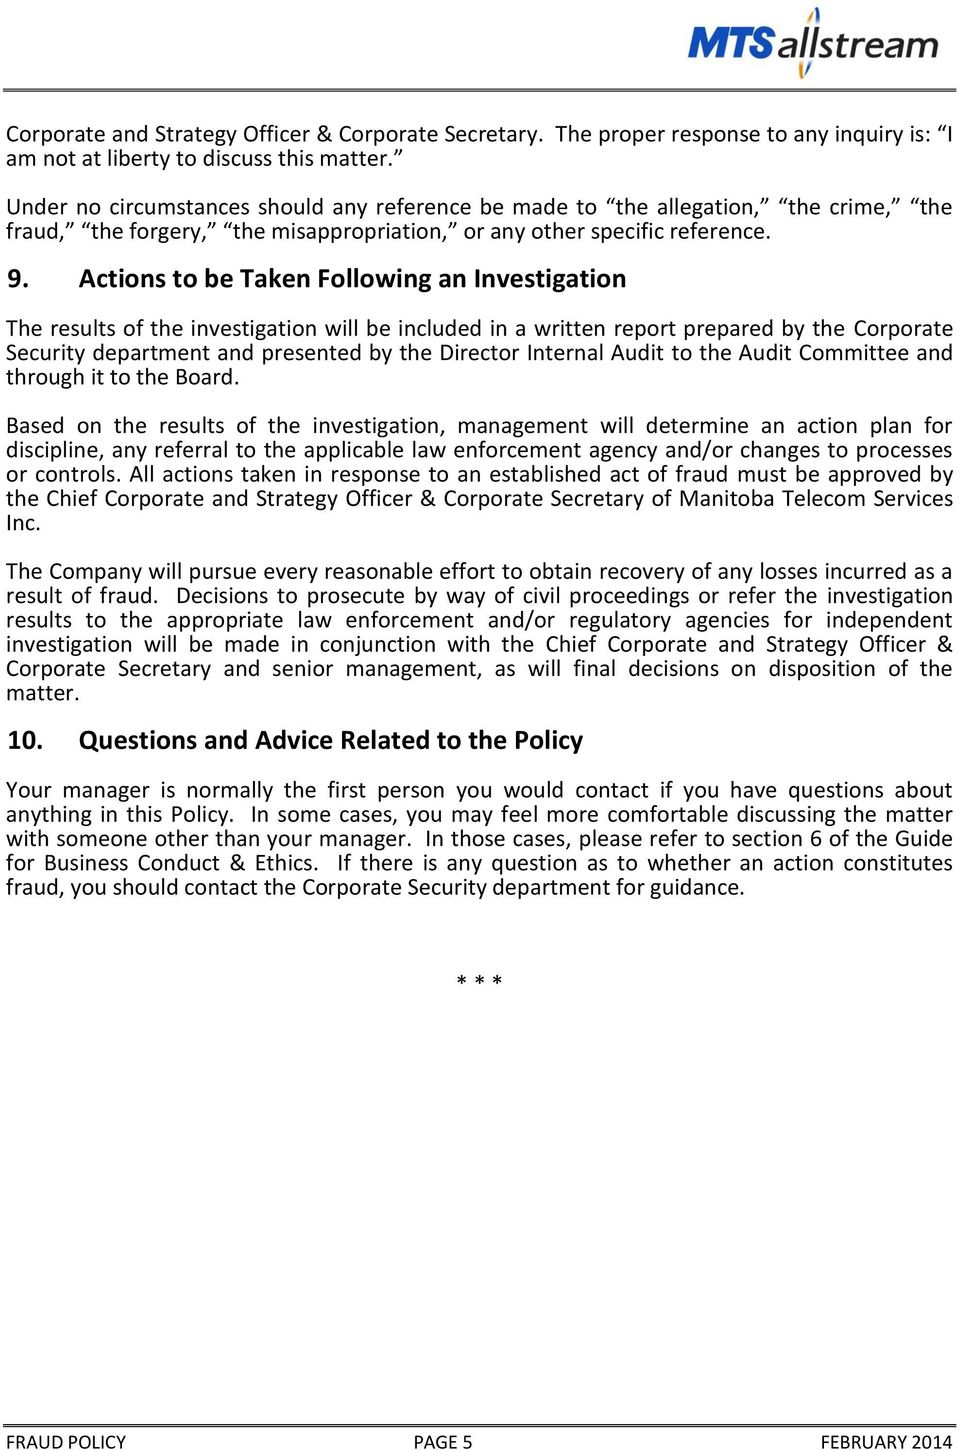 Actions to be Taken Following an Investigation The results of the investigation will be included in a written report prepared by the Corporate Security department and presented by the Director